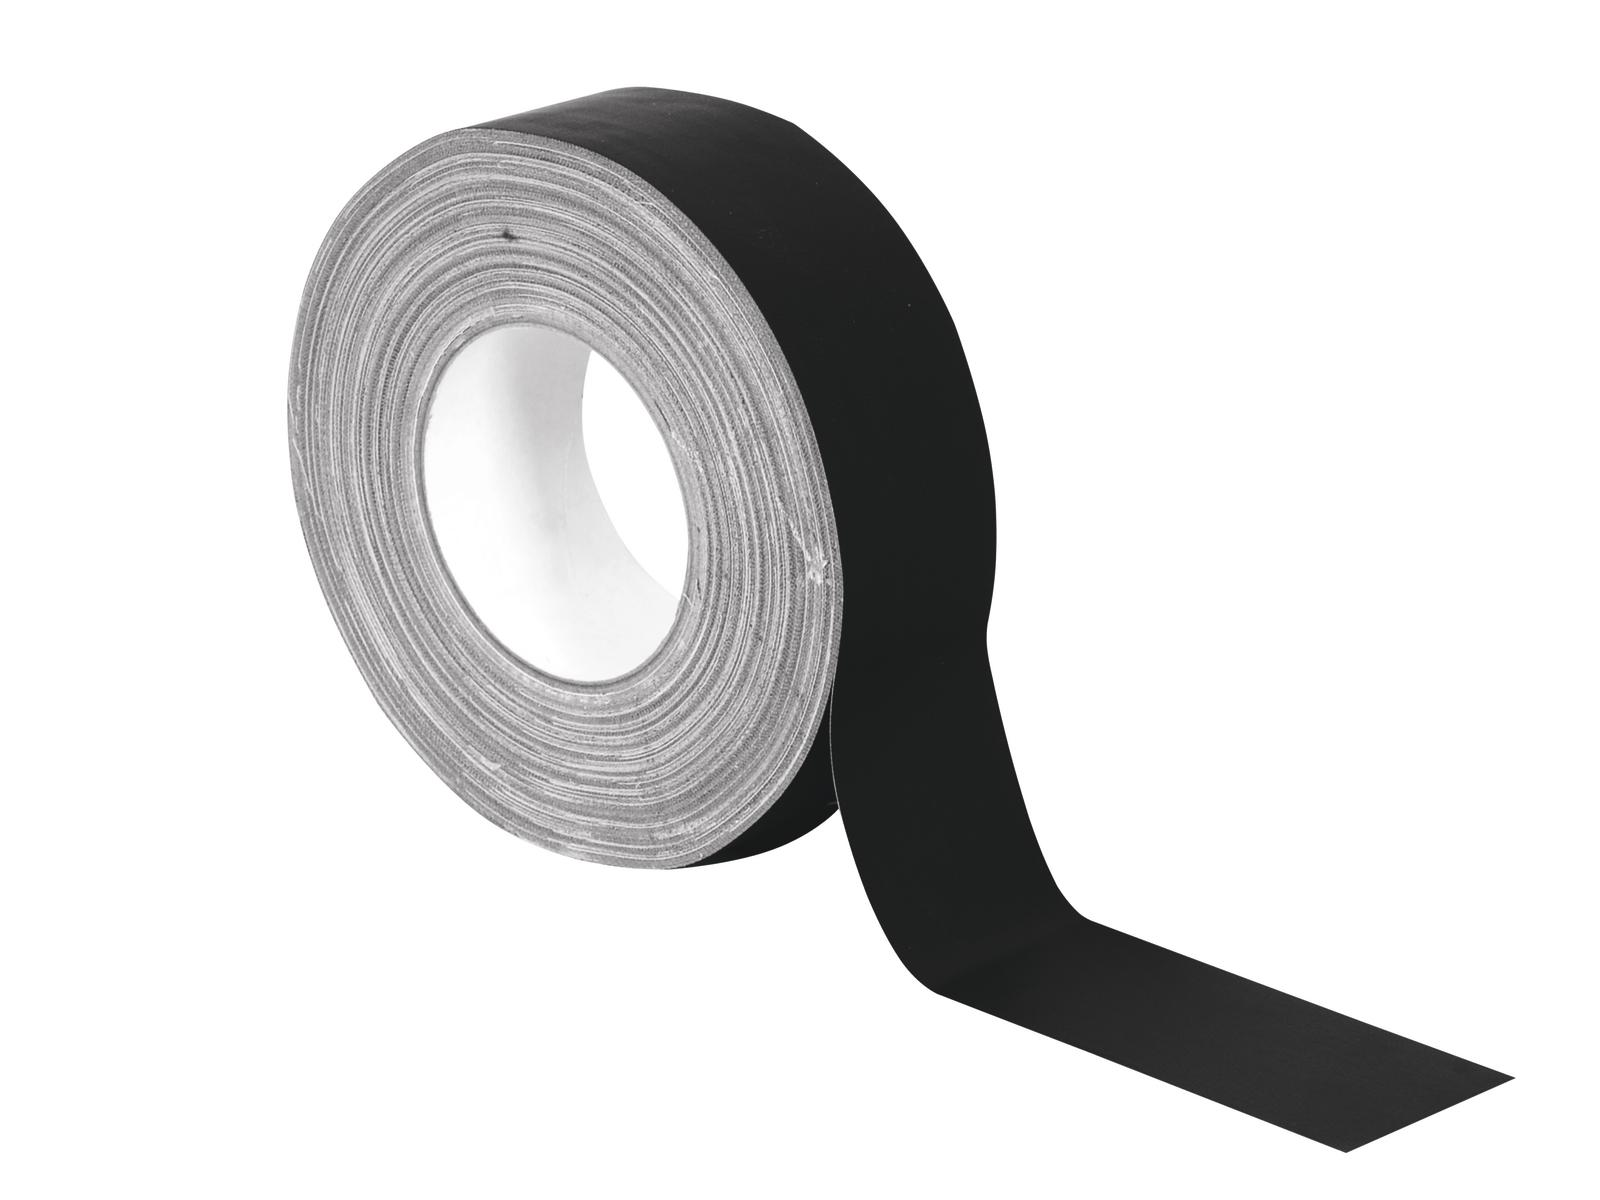 ACCESSORIO ai gaffa Tape Pro 50mm x 50m nero opaco